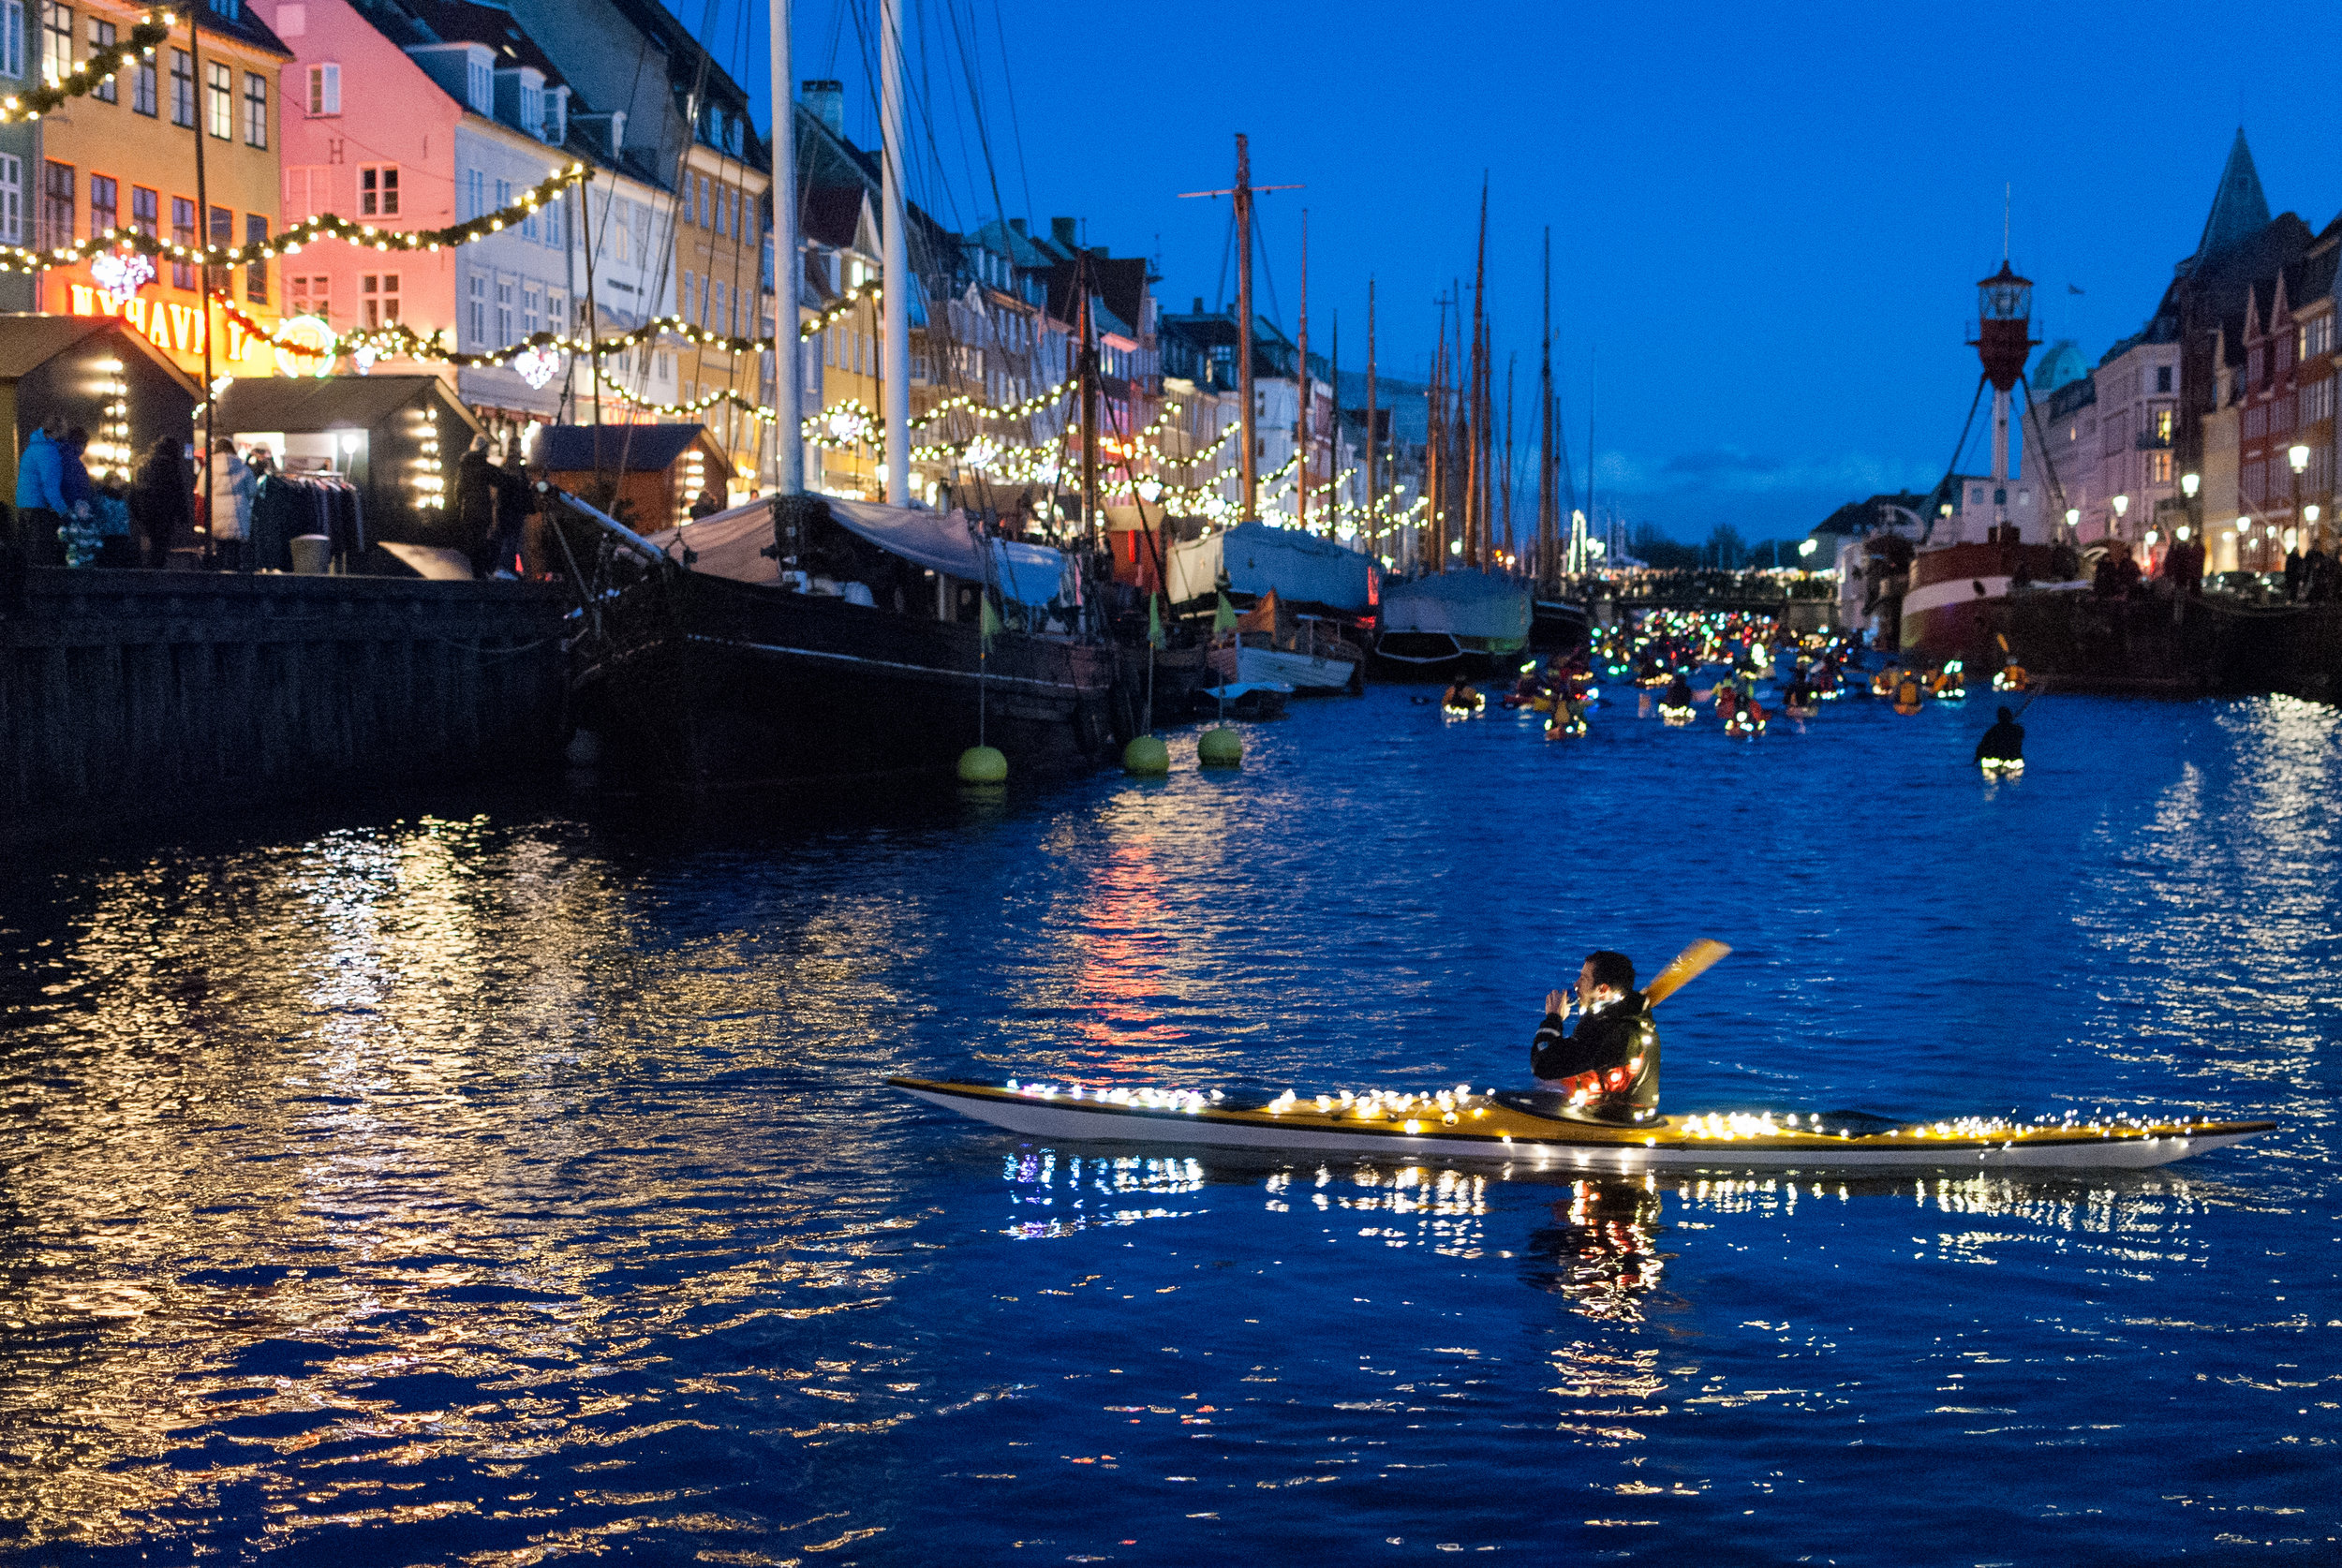 Hundreds of kayaks, each decked out with shimmering lights, sailed across the city's waters 13 December to the joyous musical accompaniment of Christmas carols. At every stop, parade participants and crowds gathered at the water's edge and sing to celebrate St Lucy's Day. Nyhavn, Copenhagen